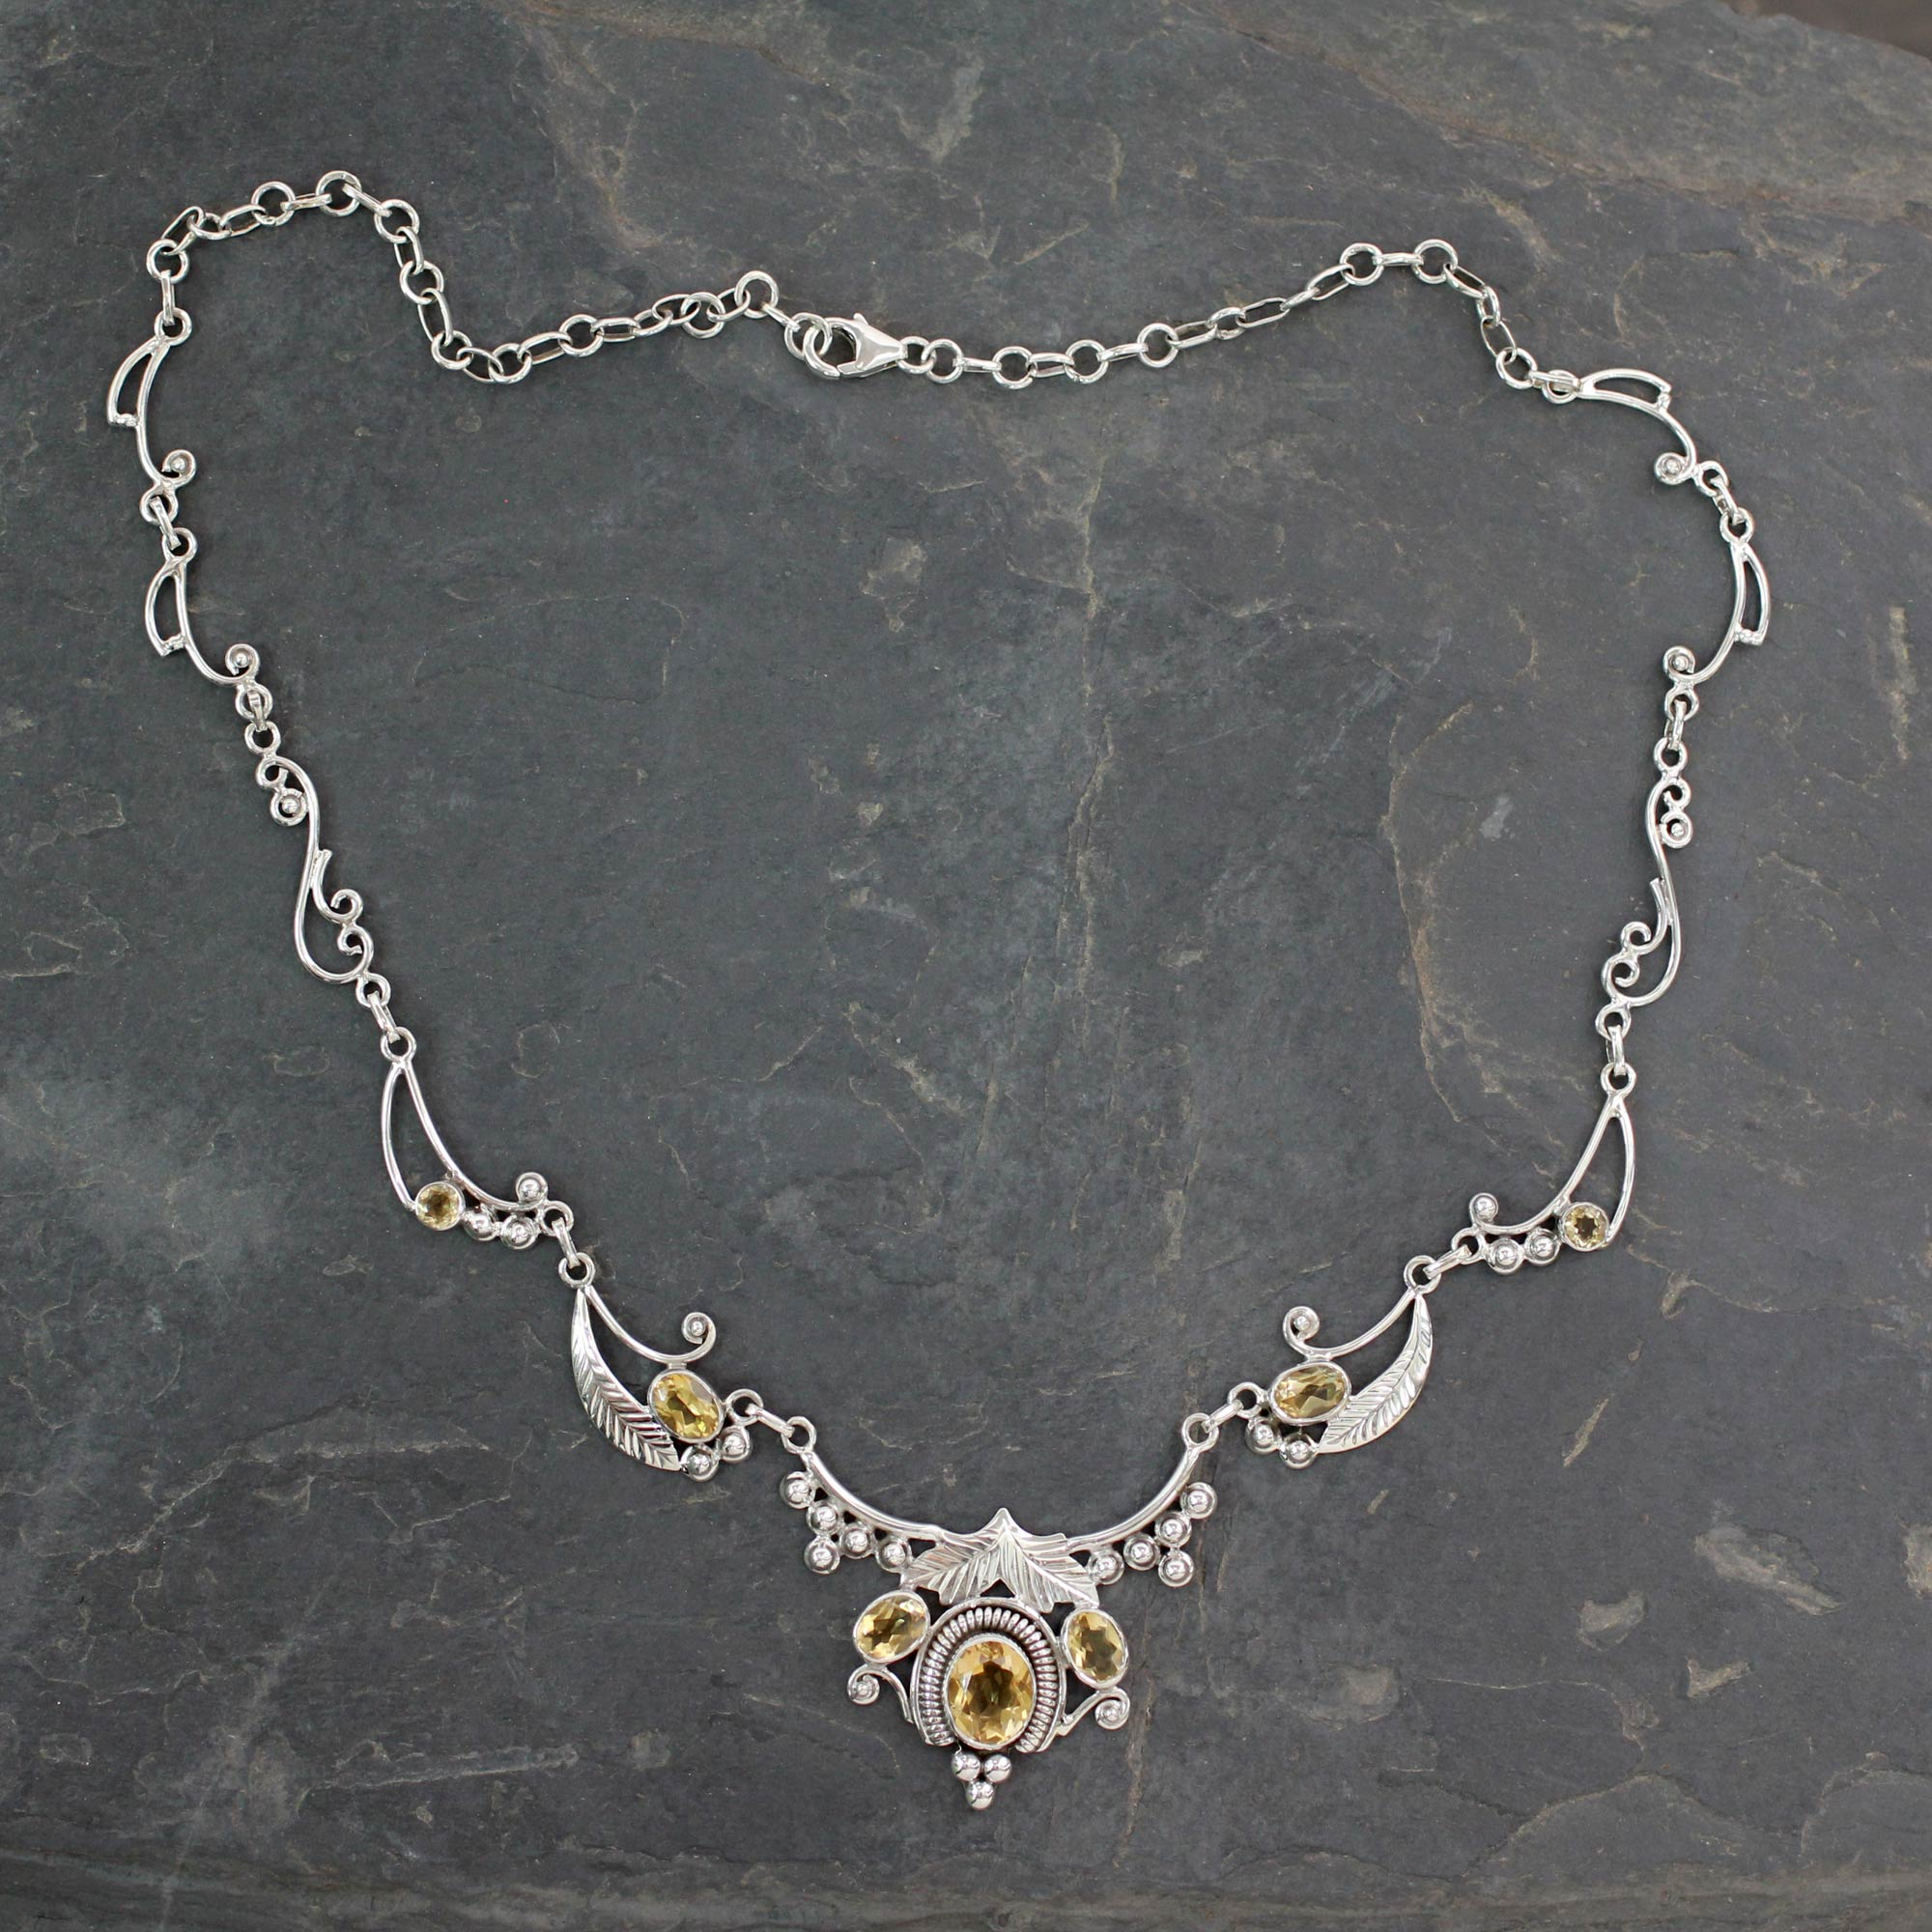 Handcrafted Sterling Silver and Gemstone Floral Necklace, 'Indian Princess' Birthstone Citrine